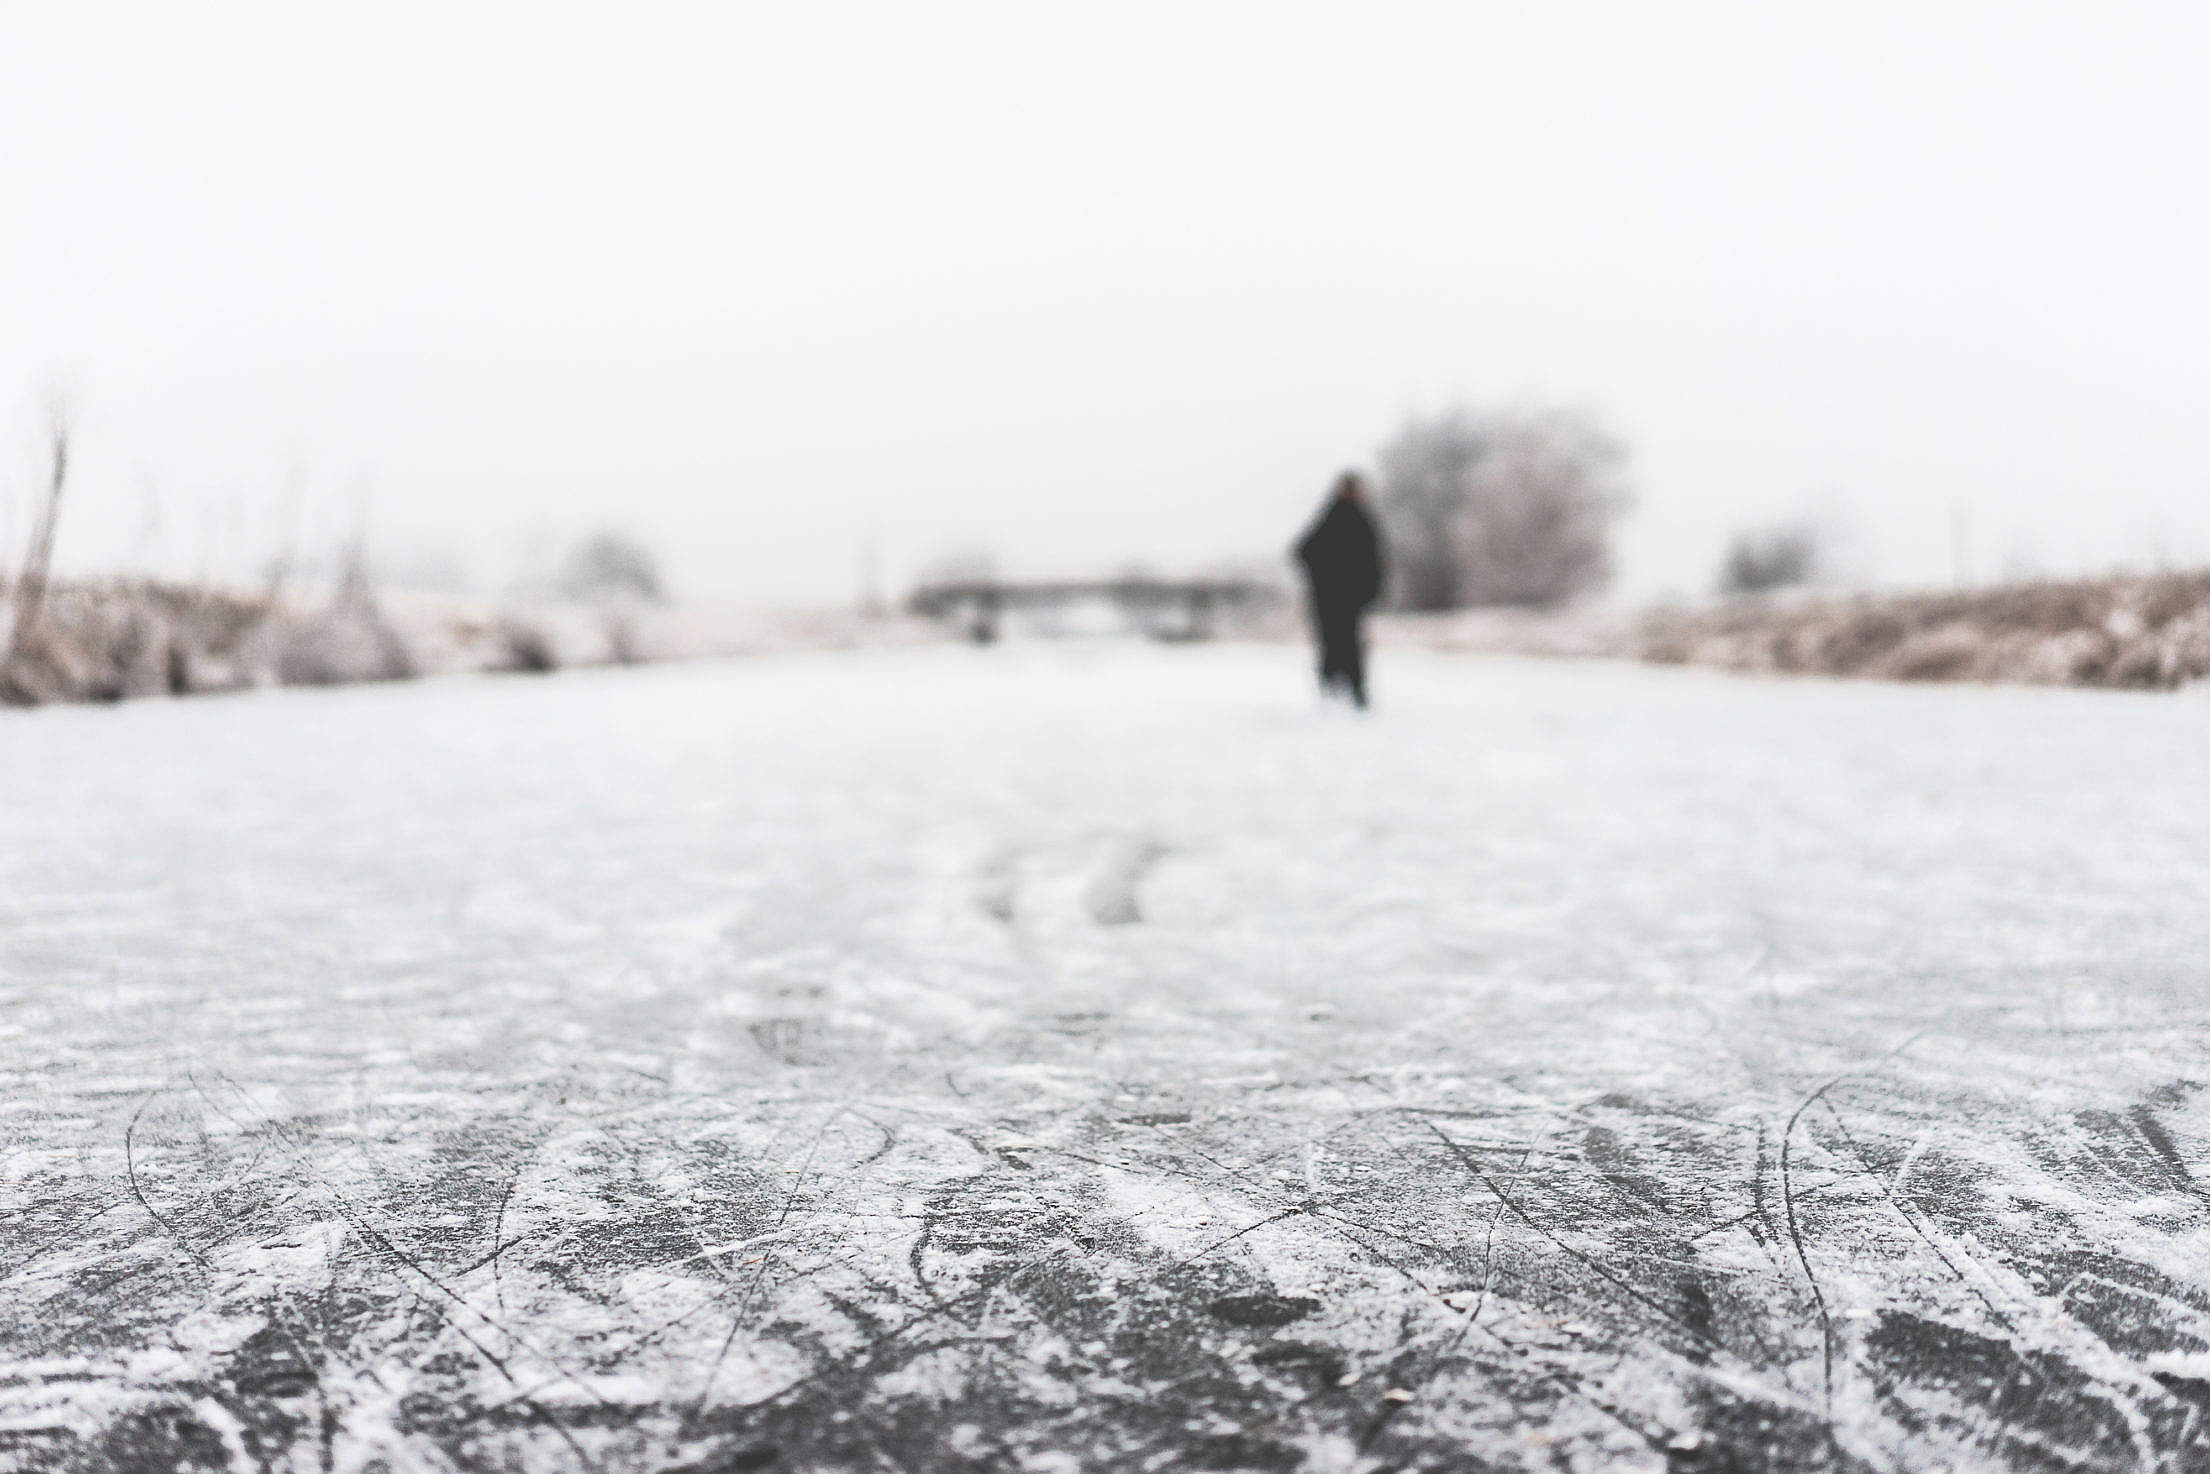 People Ice Skate on a Frozen River Free Stock Photo